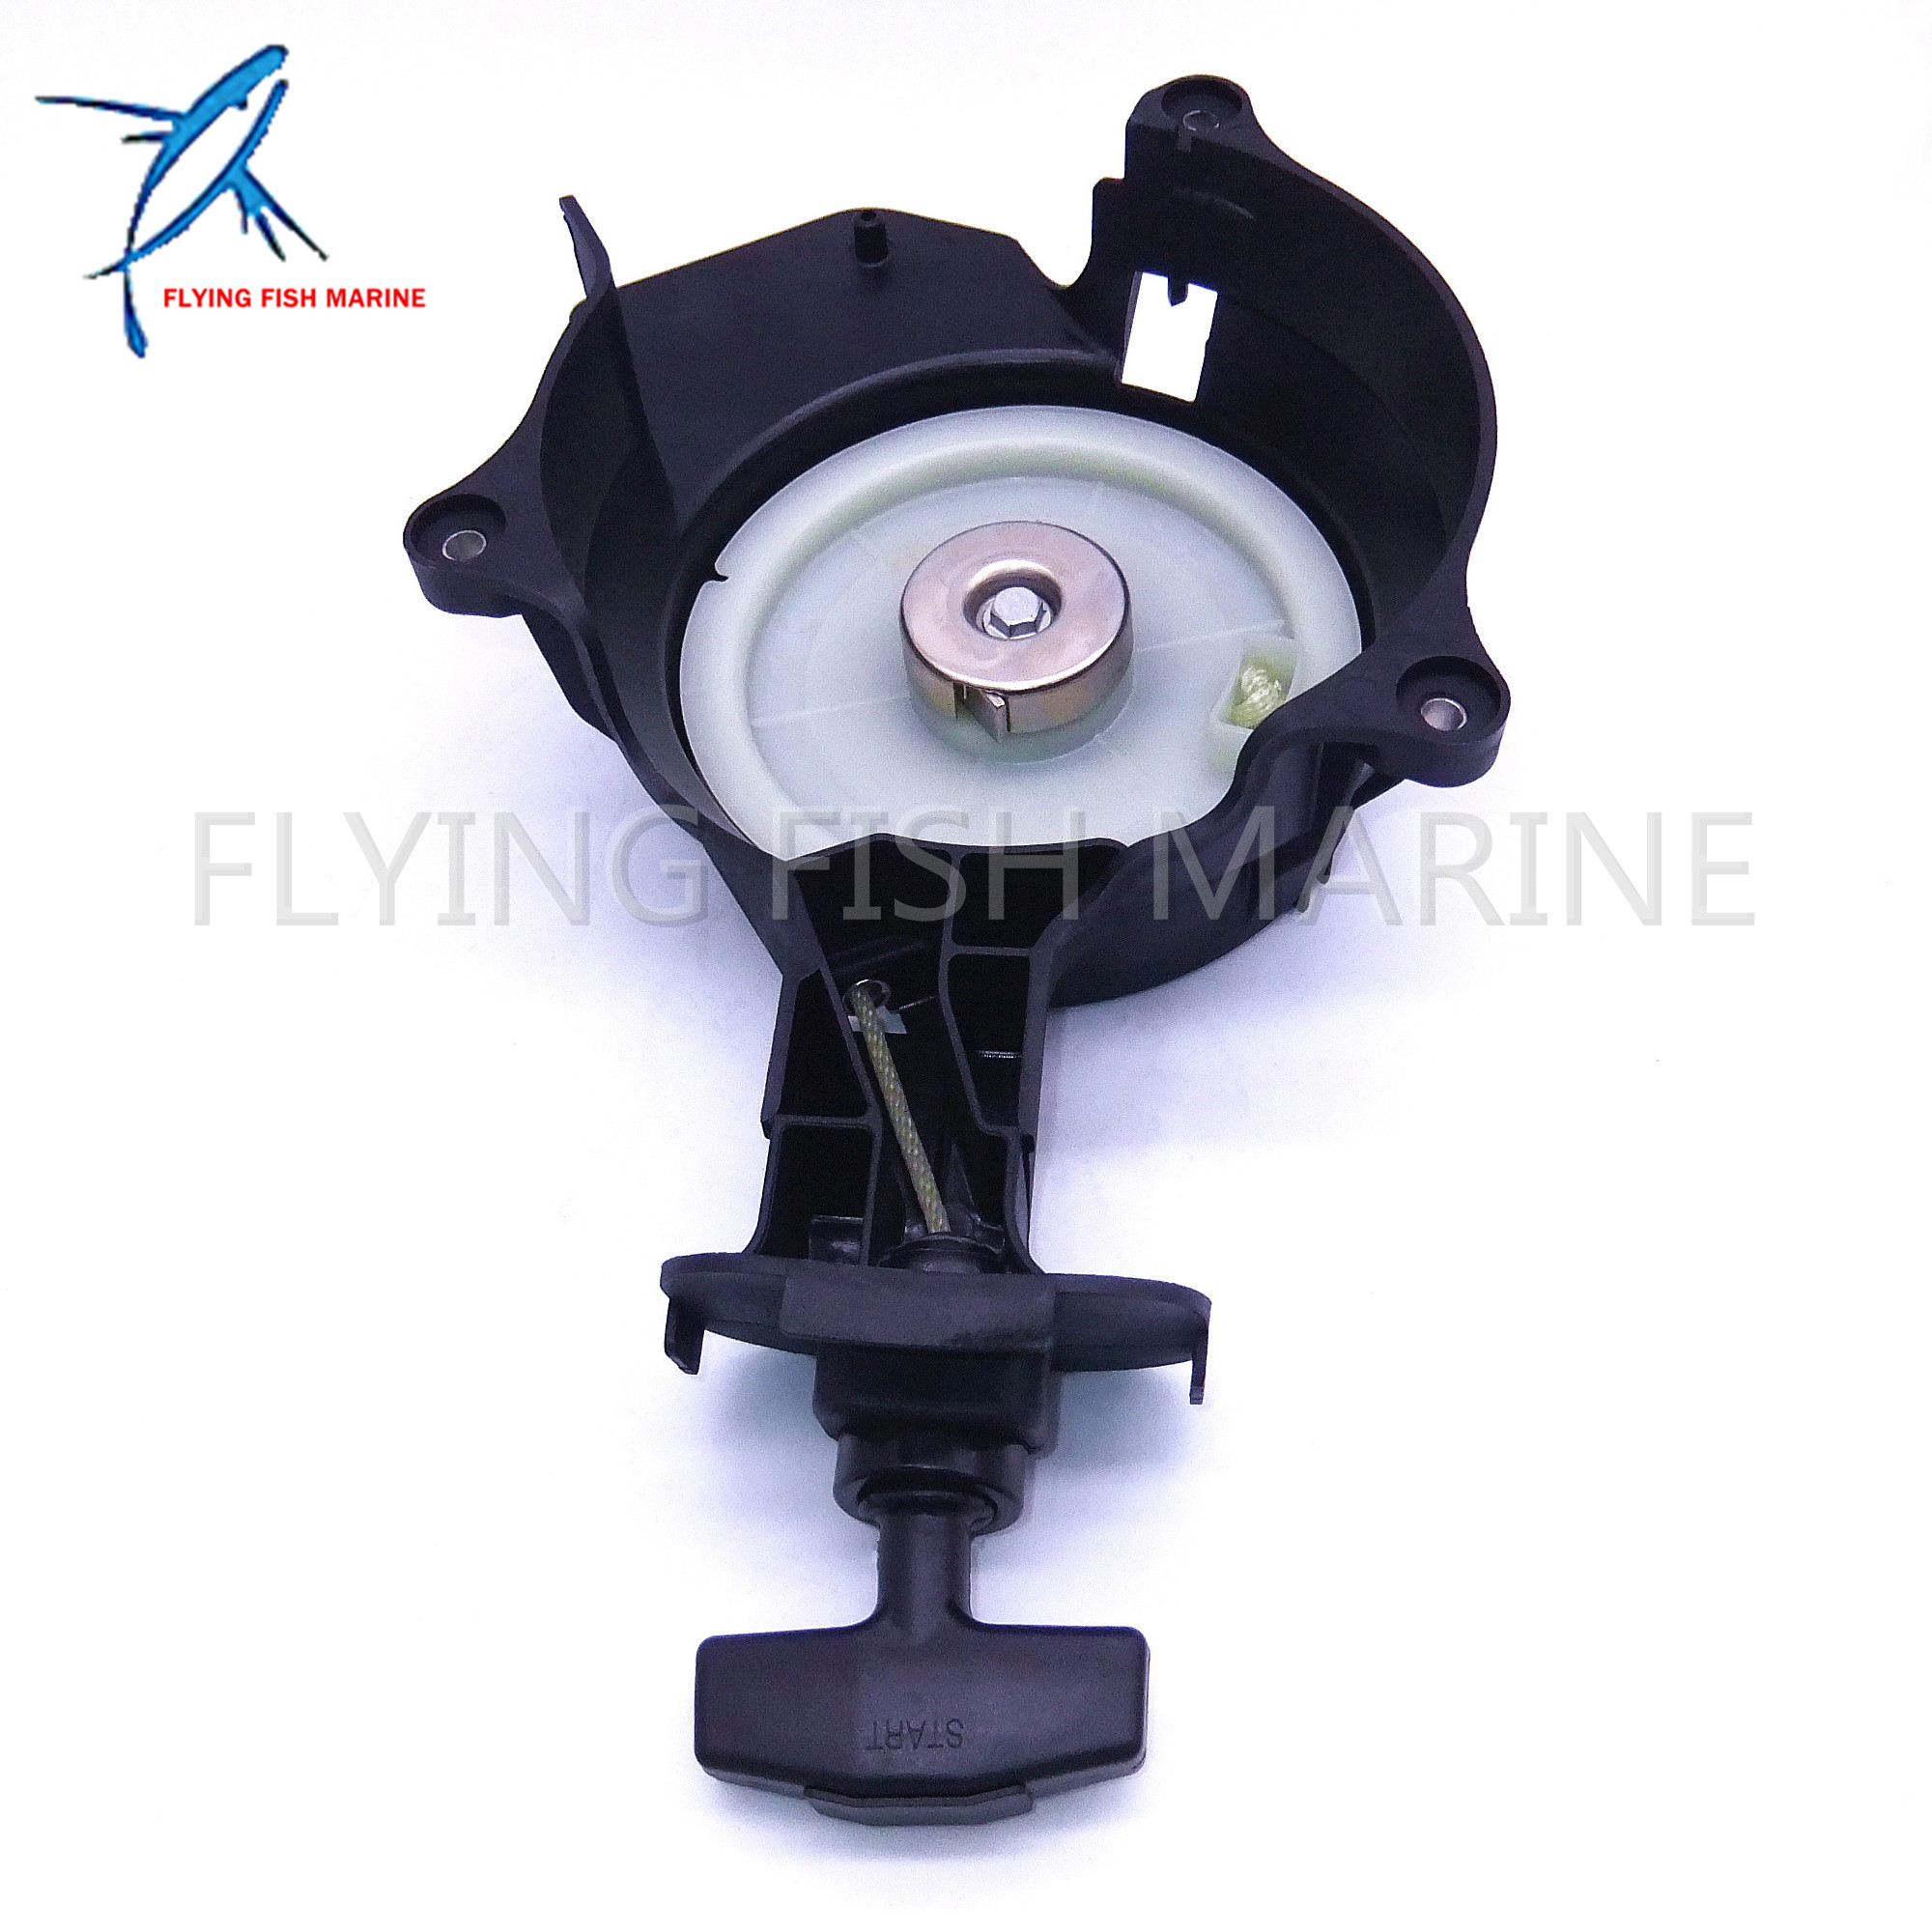 Starter Assy F6-04070000 for Parsun HDX F5A F6A 4-stroke Outboard Motors